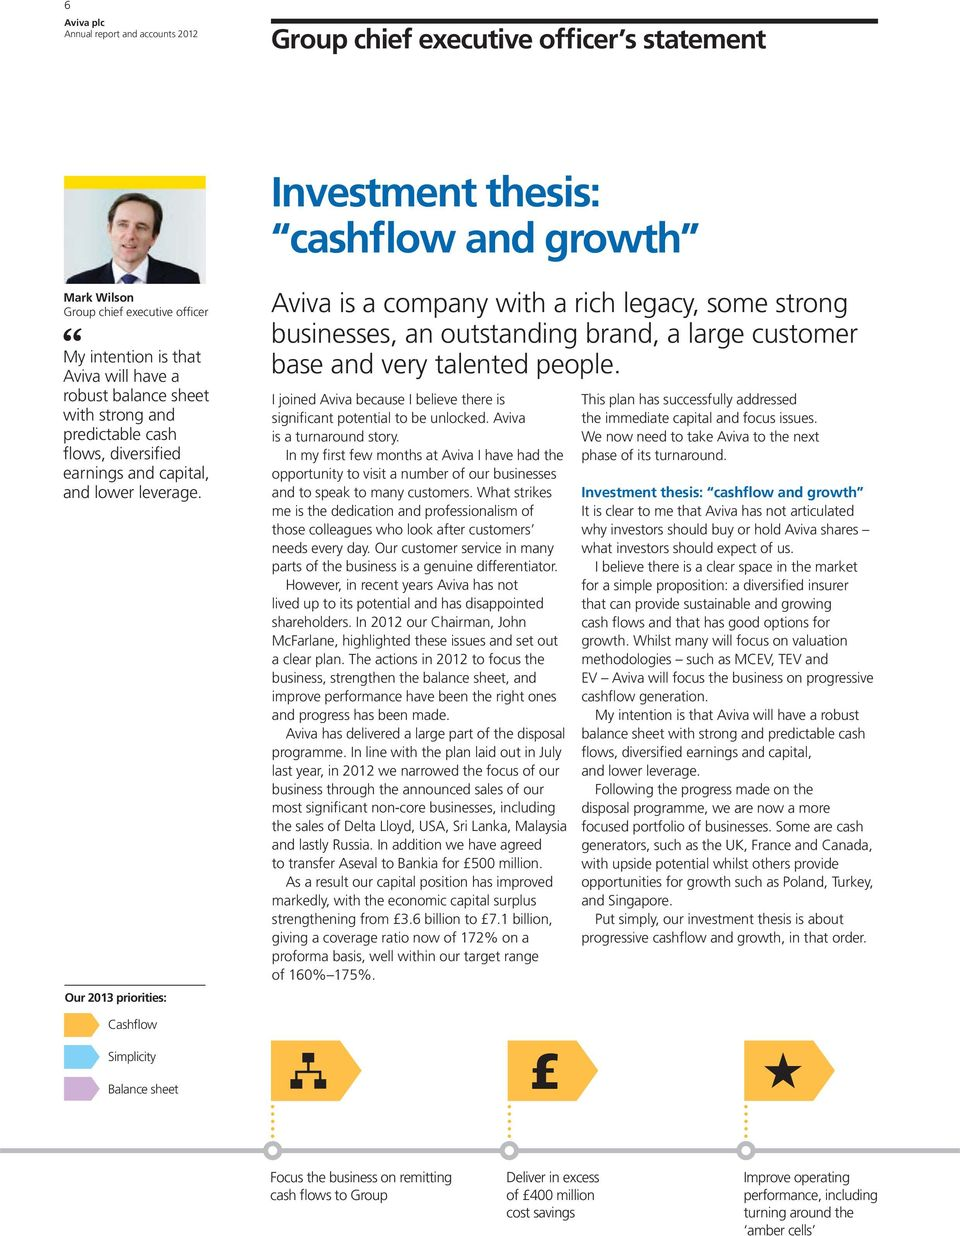 Our 2013 priorities: Cashflow Simplicity Balance sheet Aviva is a company with a rich legacy, some strong businesses, an outstanding brand, a large customer base and very talented people.